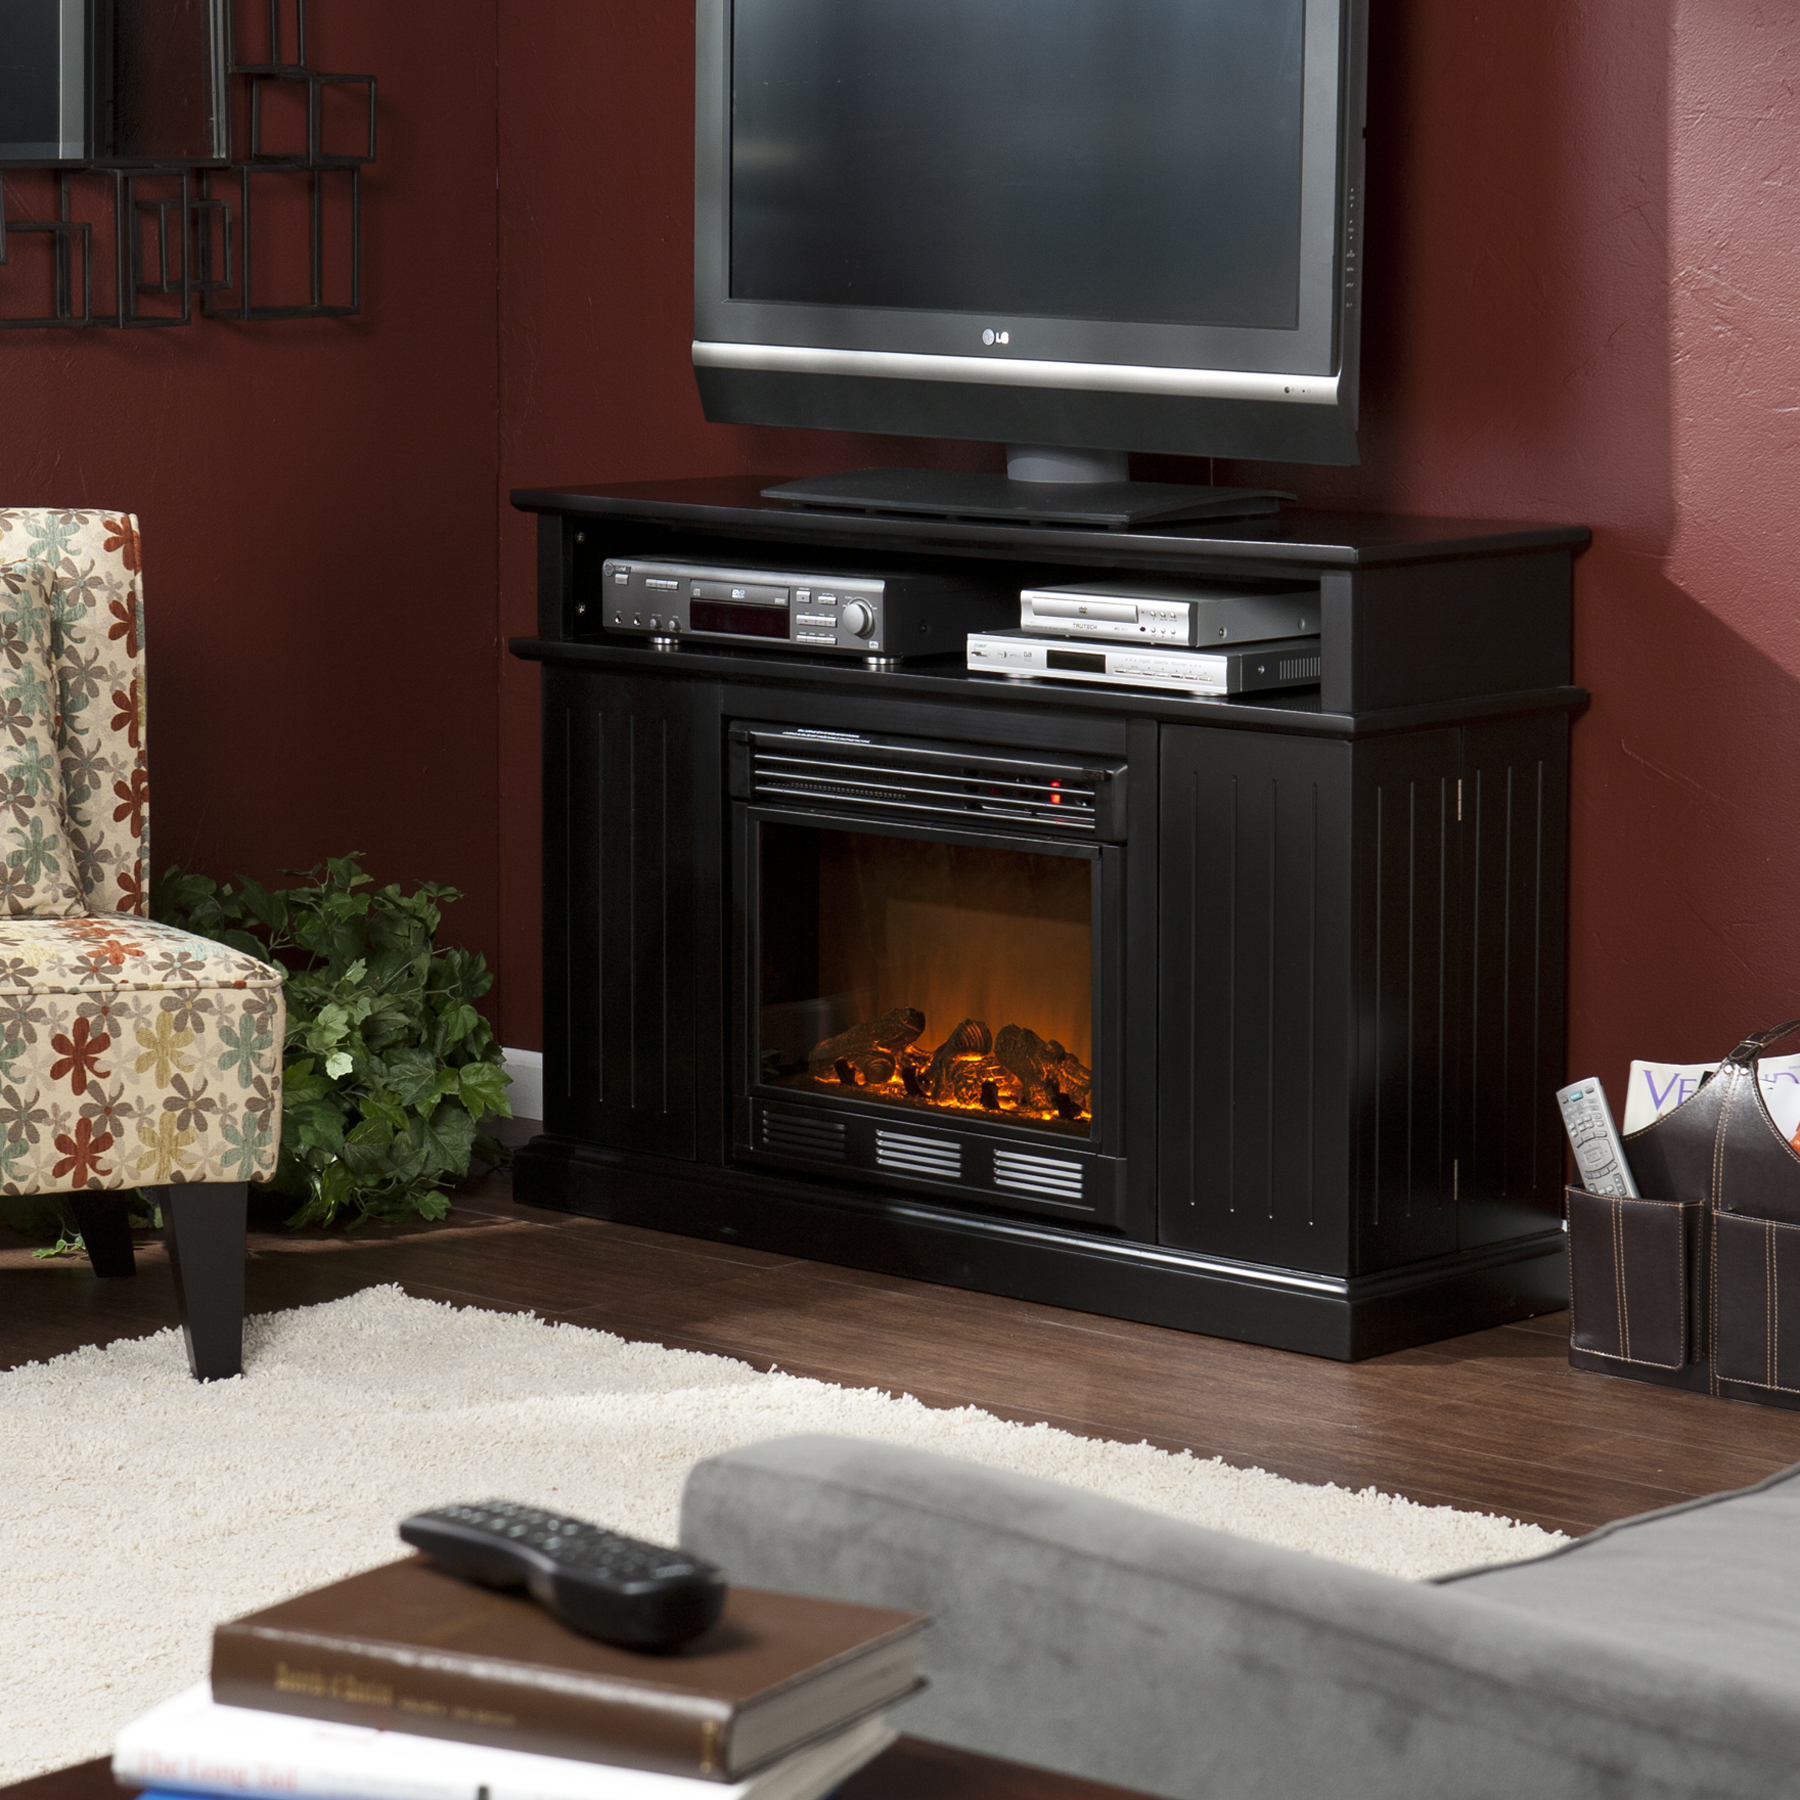 If you are seeking a fireplace that has it all